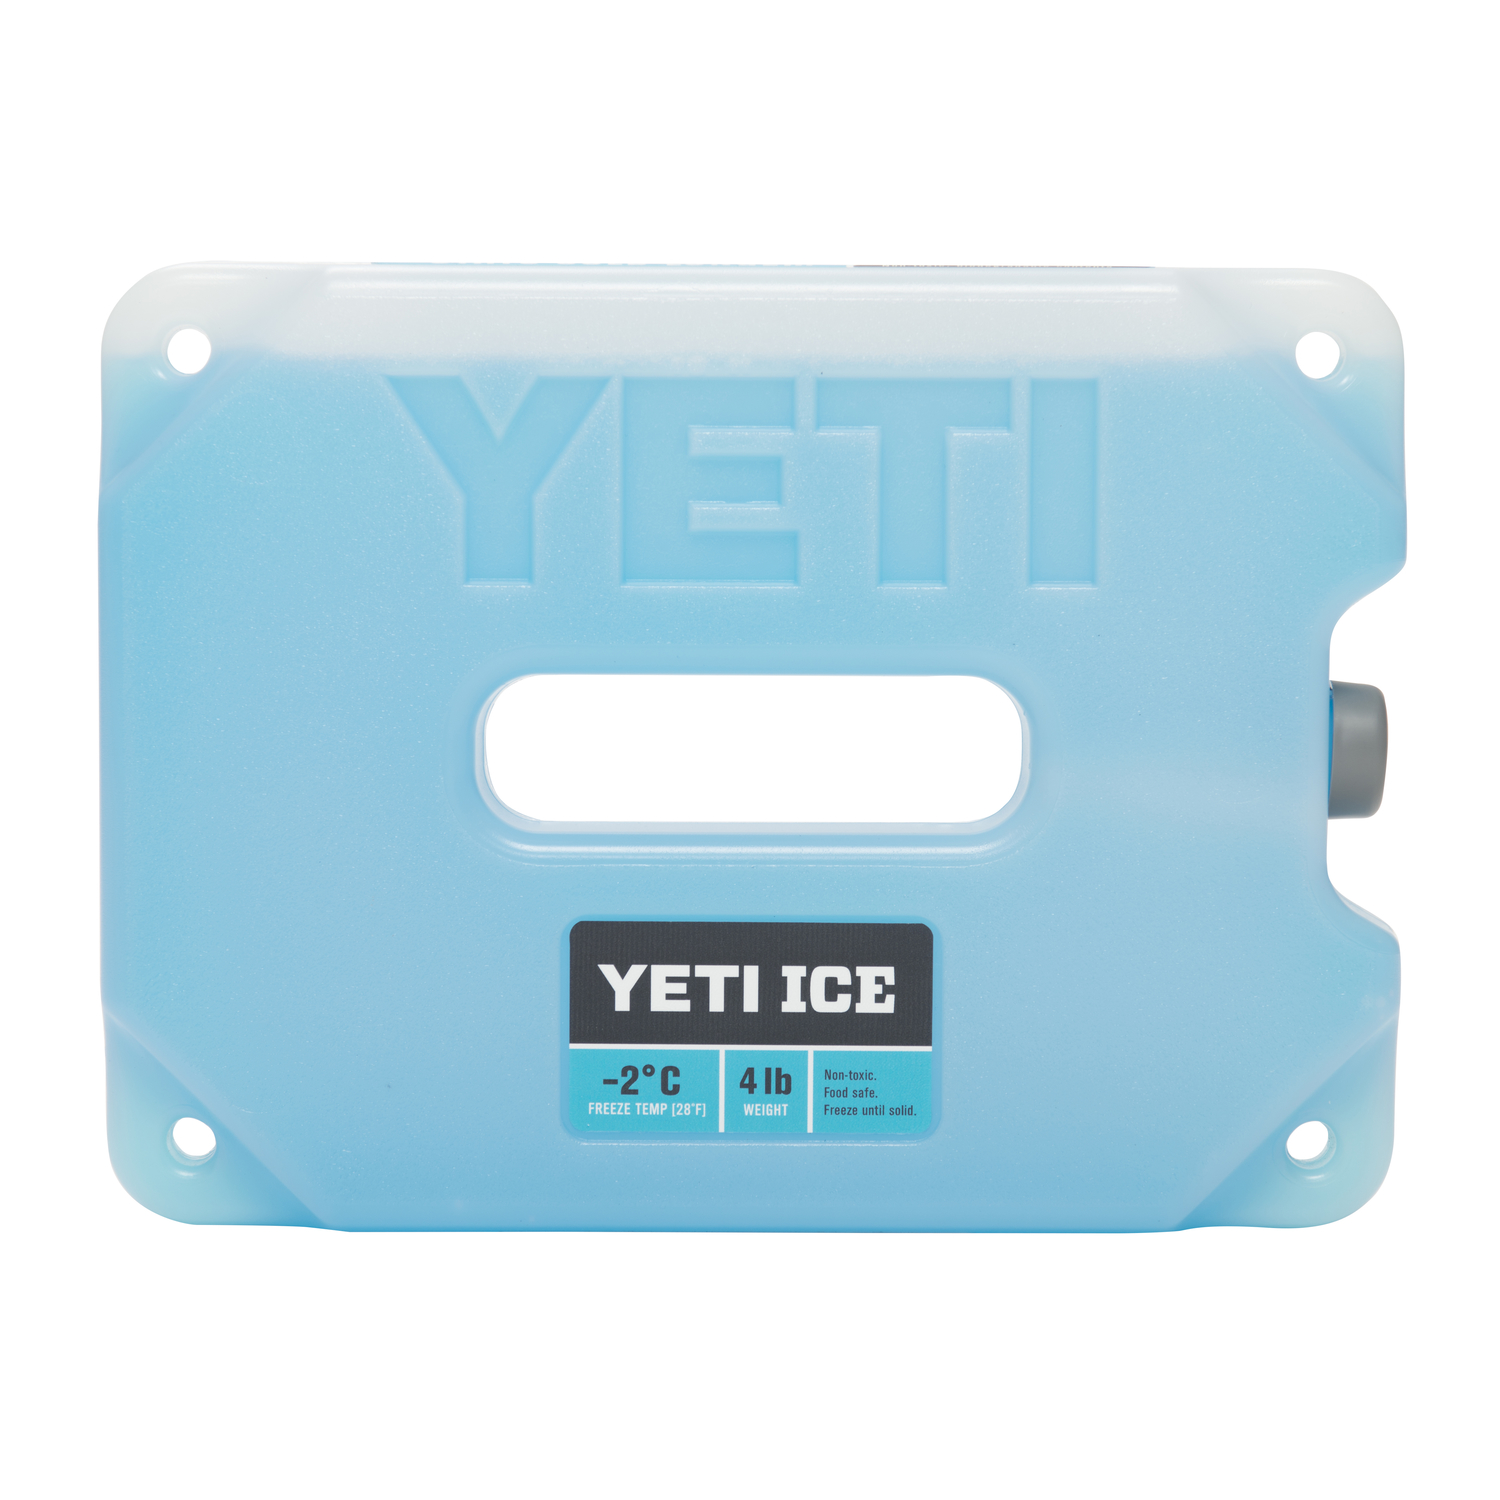 YETI  Ice Gel Pack  4 lb. Blue  1 each